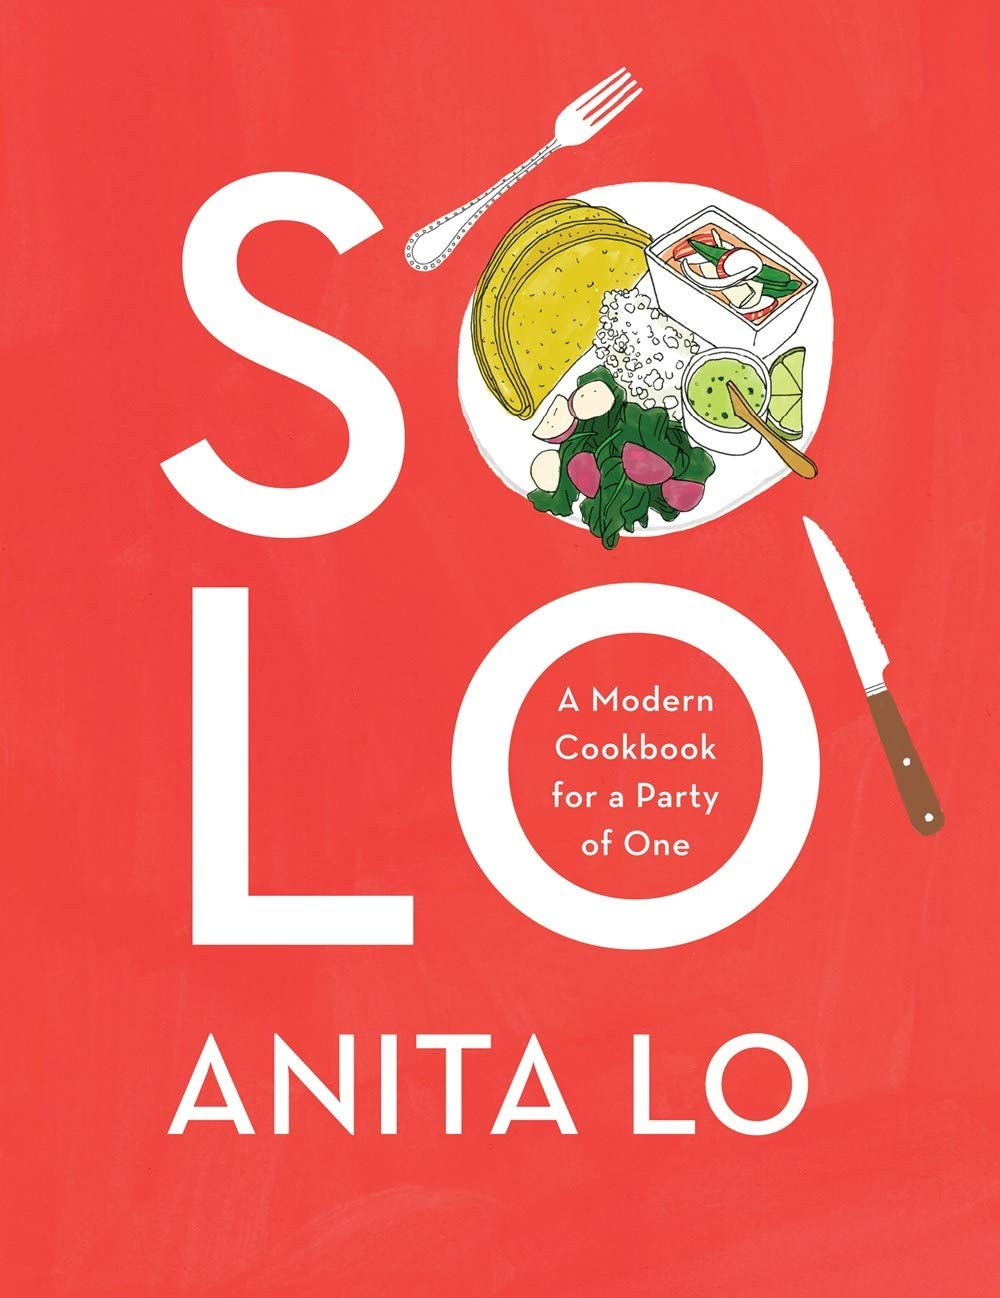 Solo: A Modern Cookbook for a Party of One by Anita Lo